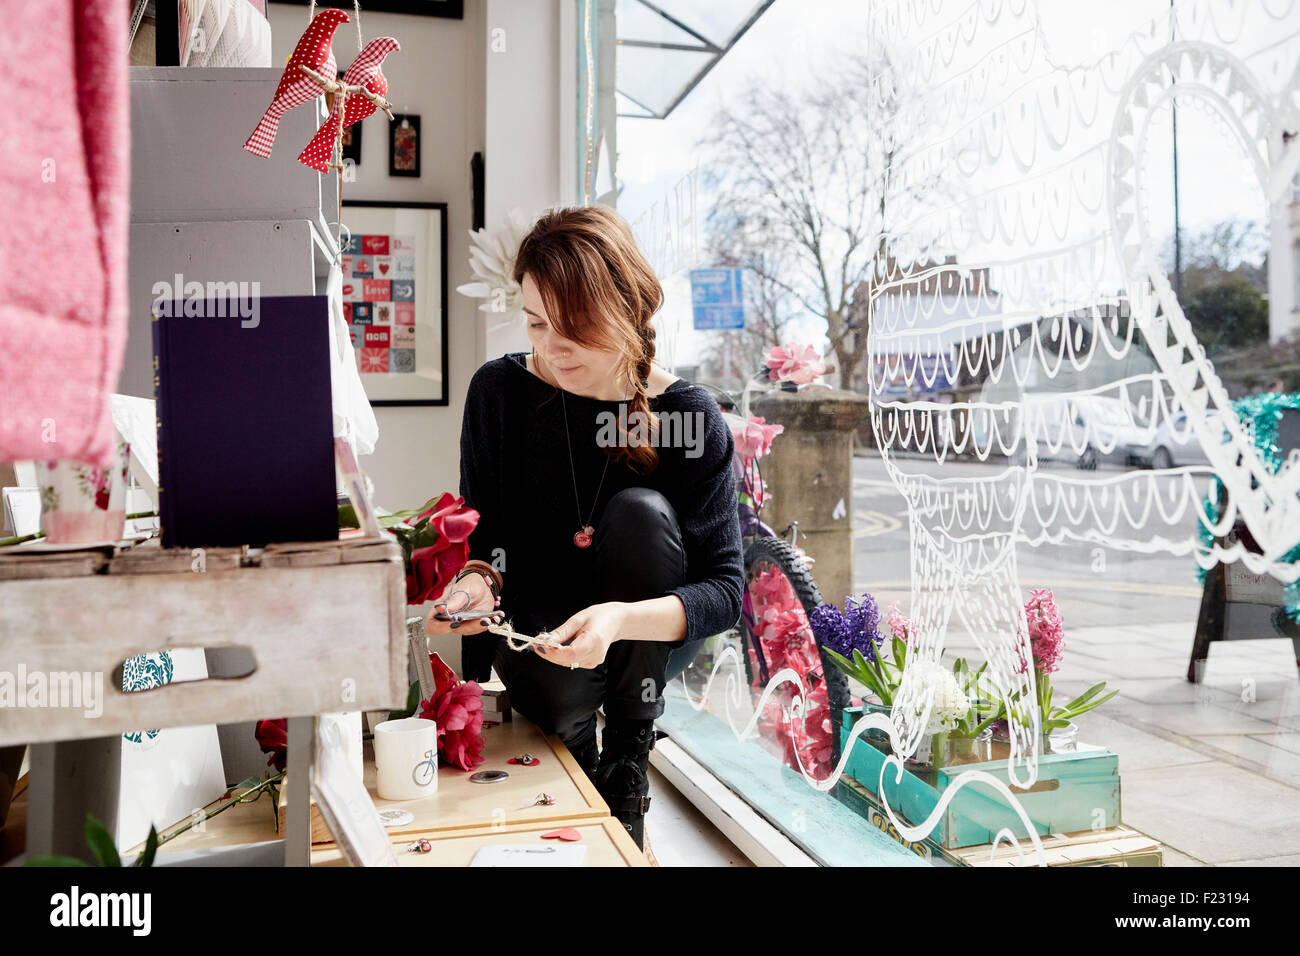 A mature woman in a gift shop by the window, holding a small star. - Stock Image